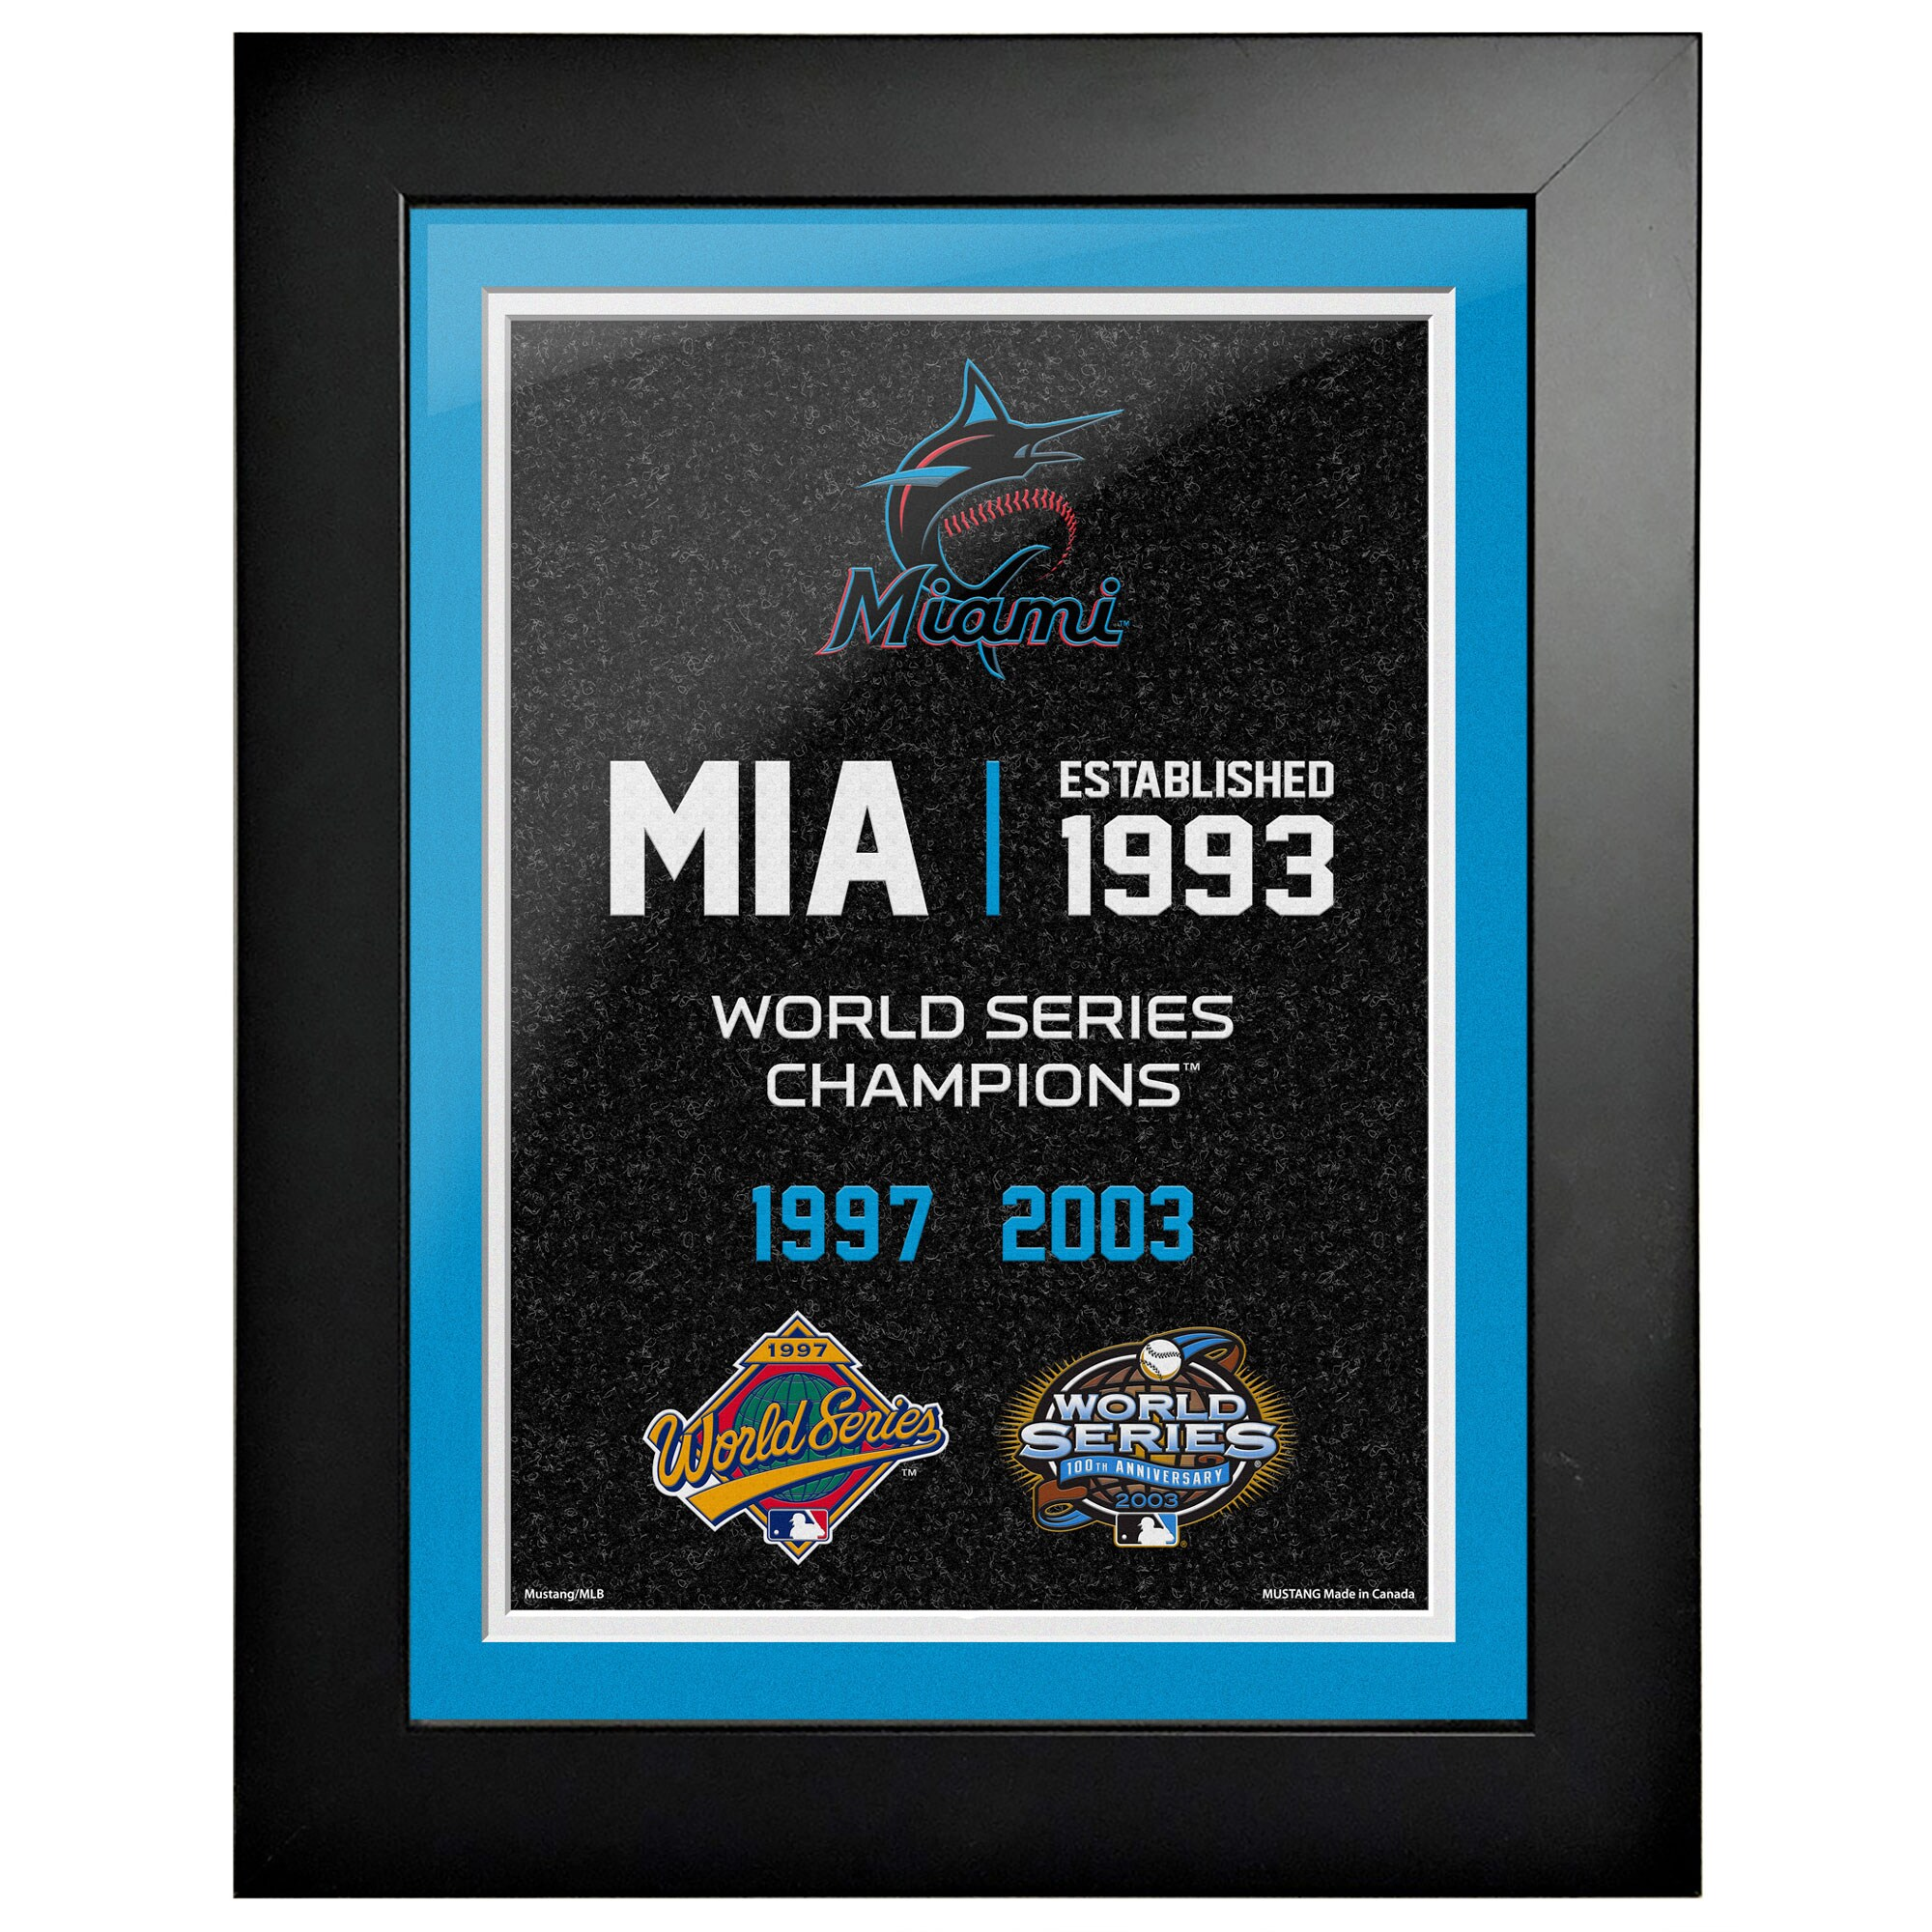 Miami Marlins 2-Time World Series Champions 18'' x 14'' Empire Framed Art